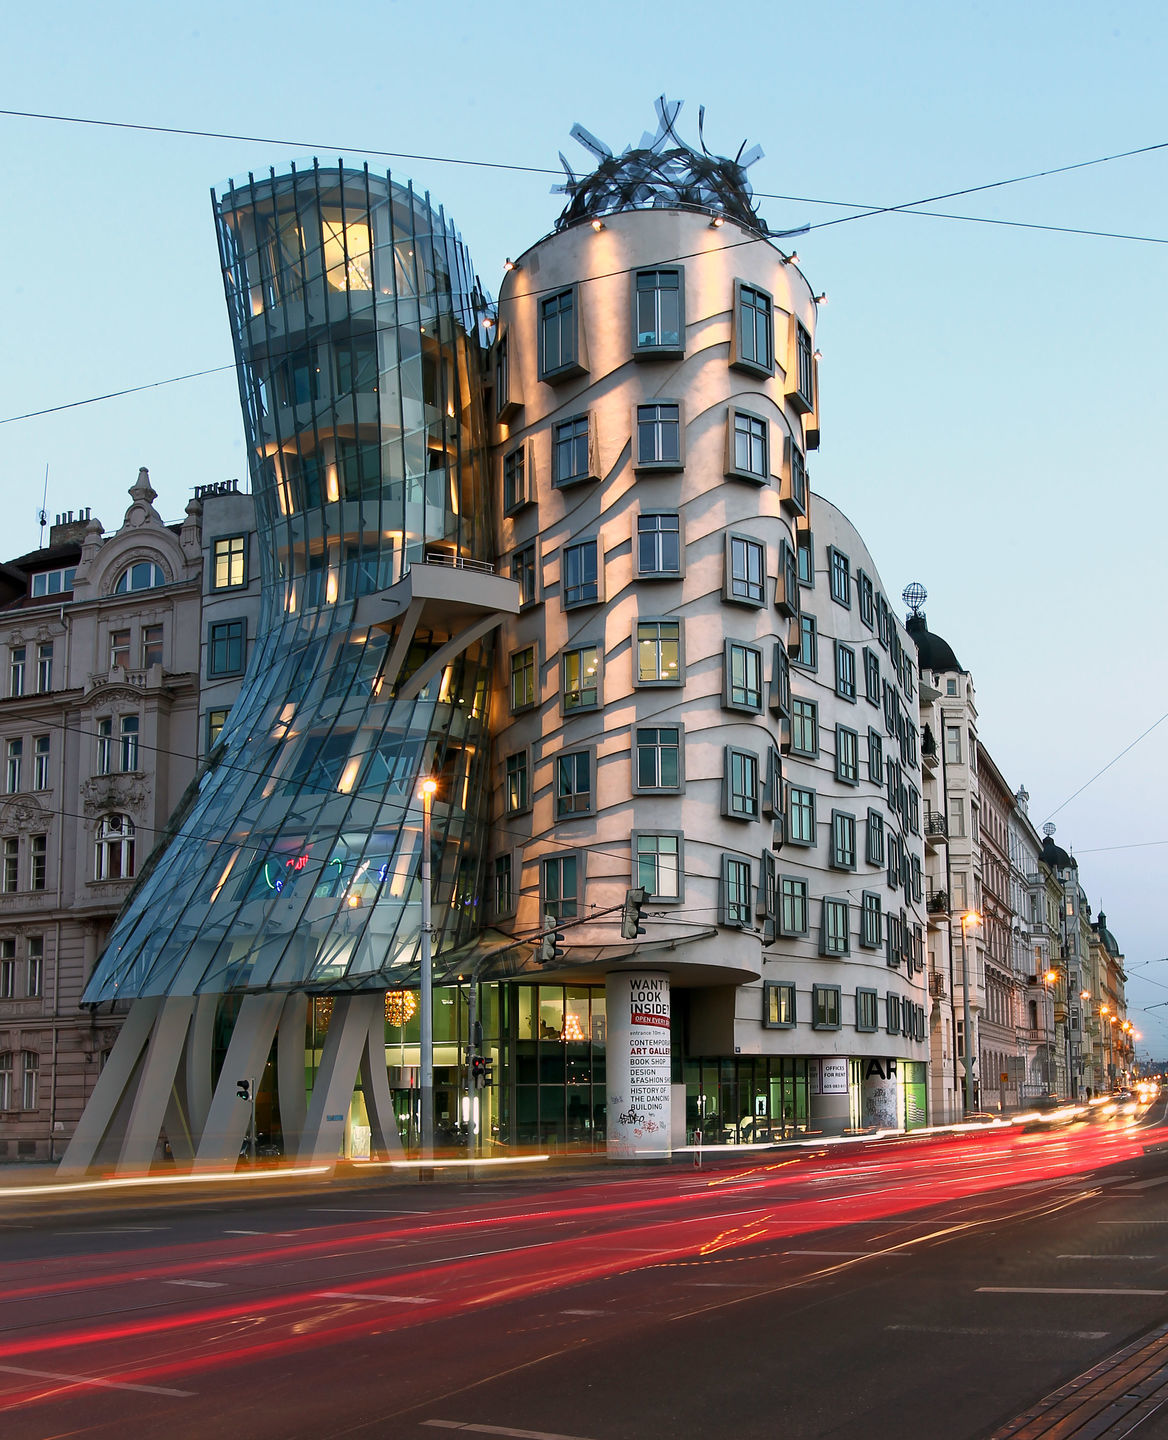 The Dancing House is one of the most famous buildings in the Czech capital.